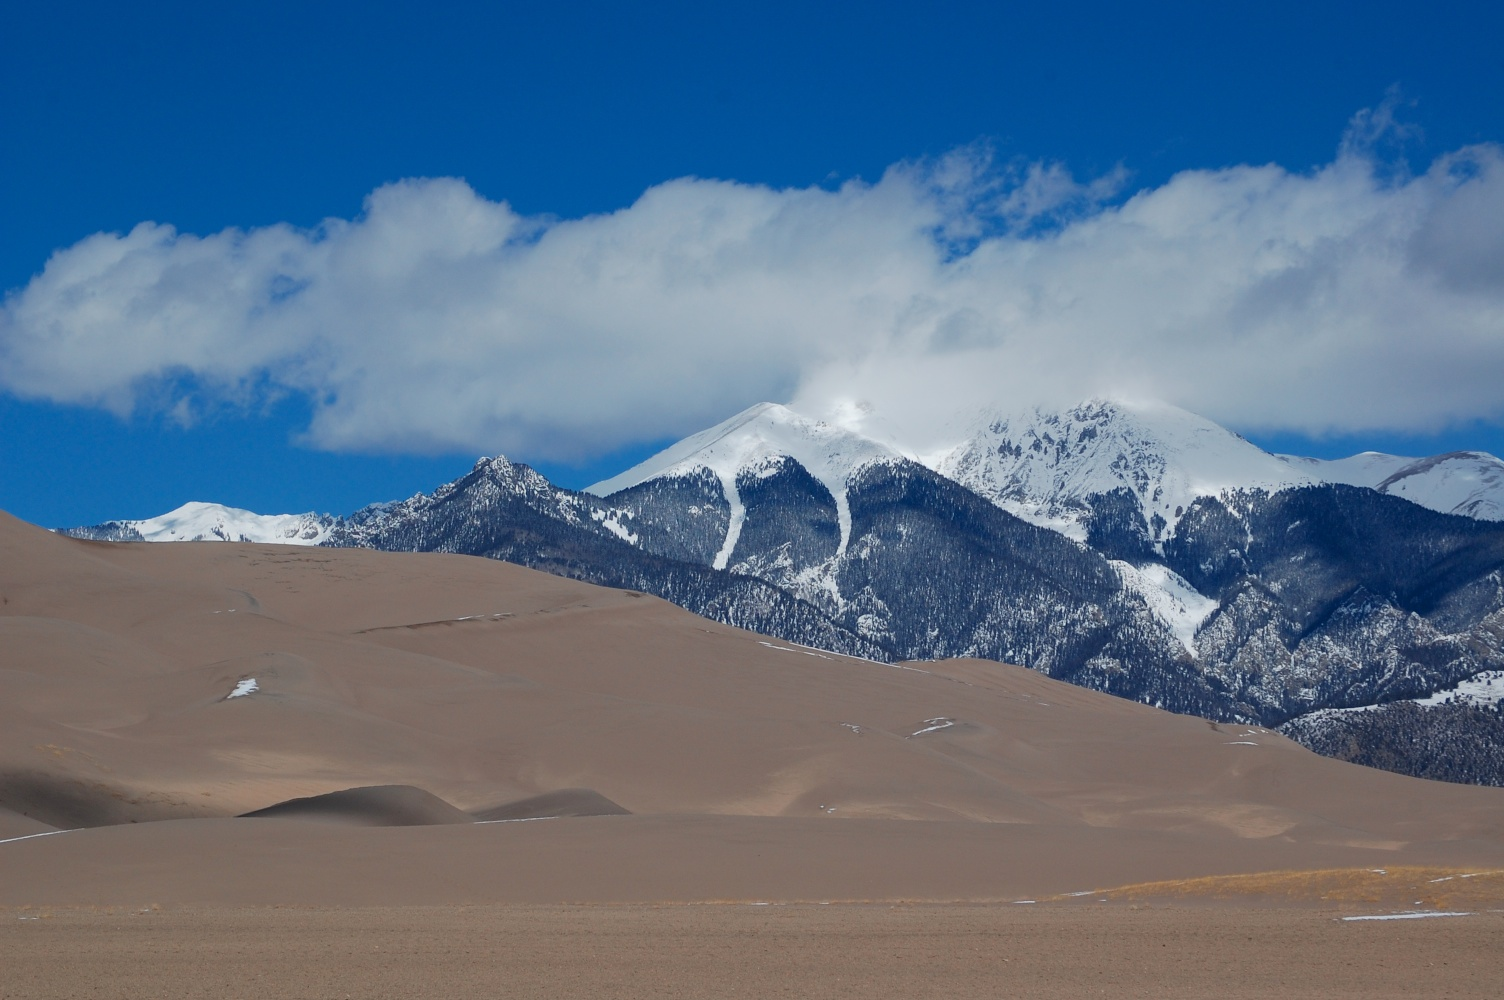 sand dunes and mountain tops